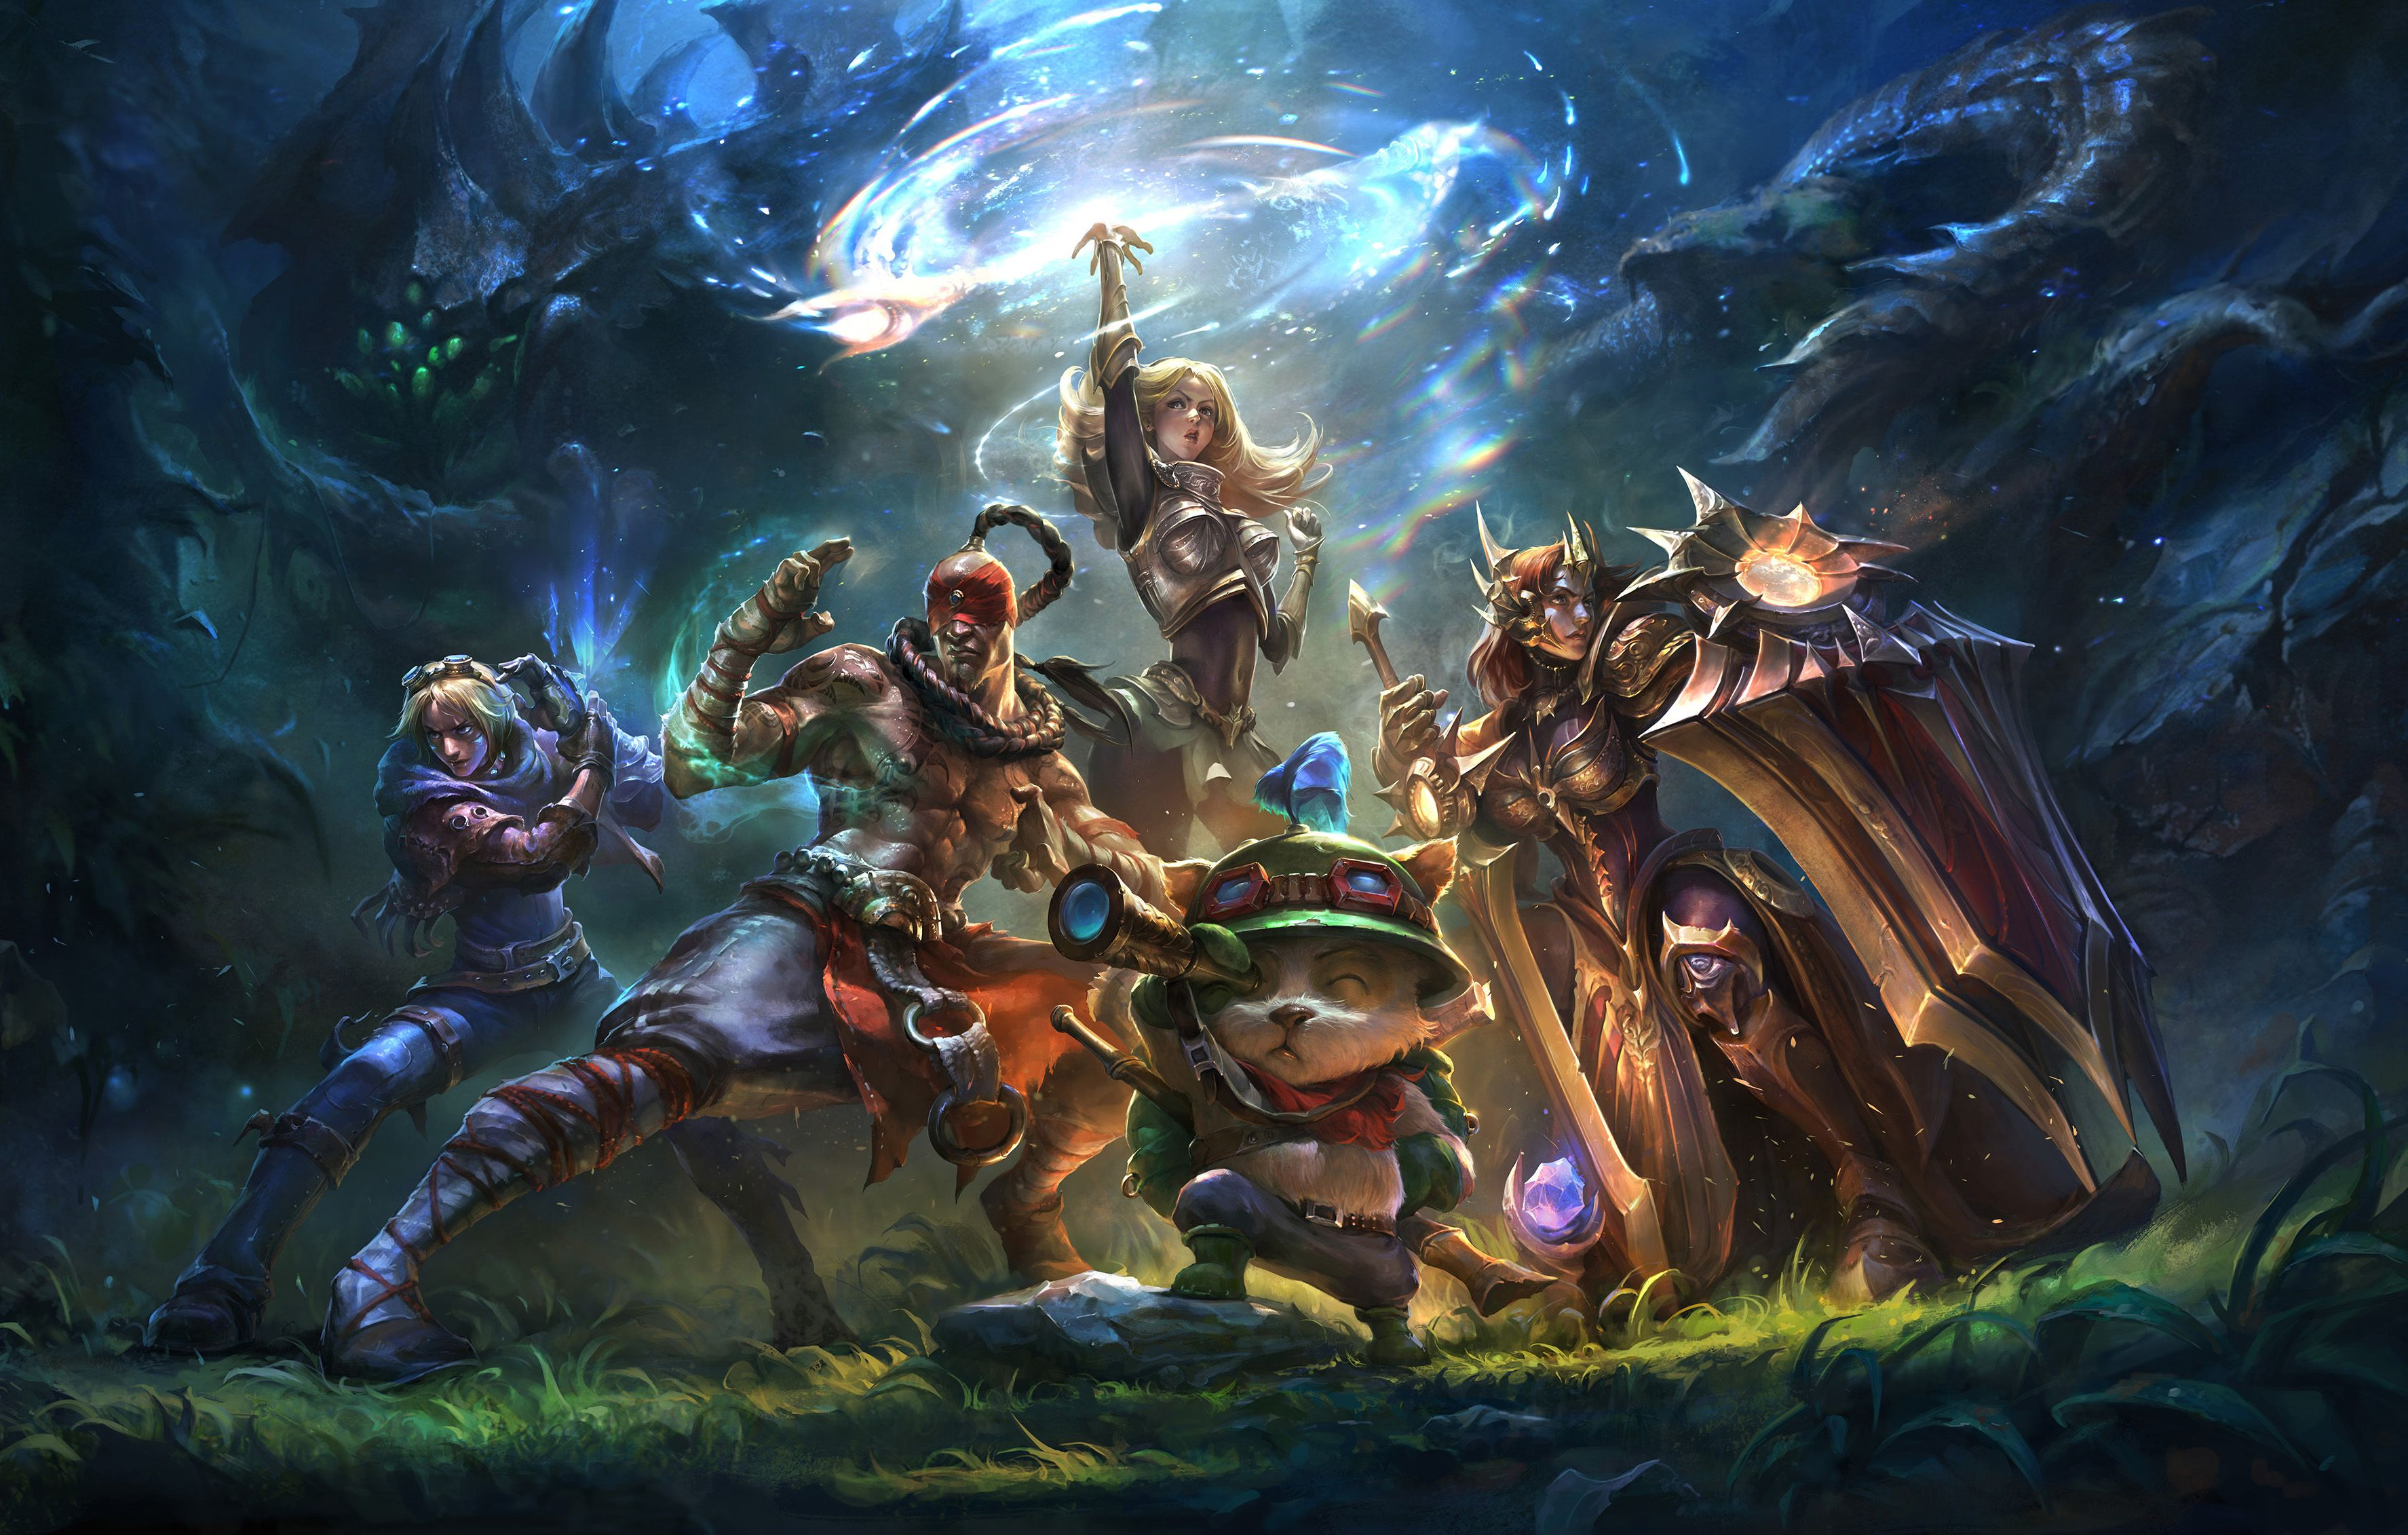 Video game league of legends lee sin teemo ezreal lux leona